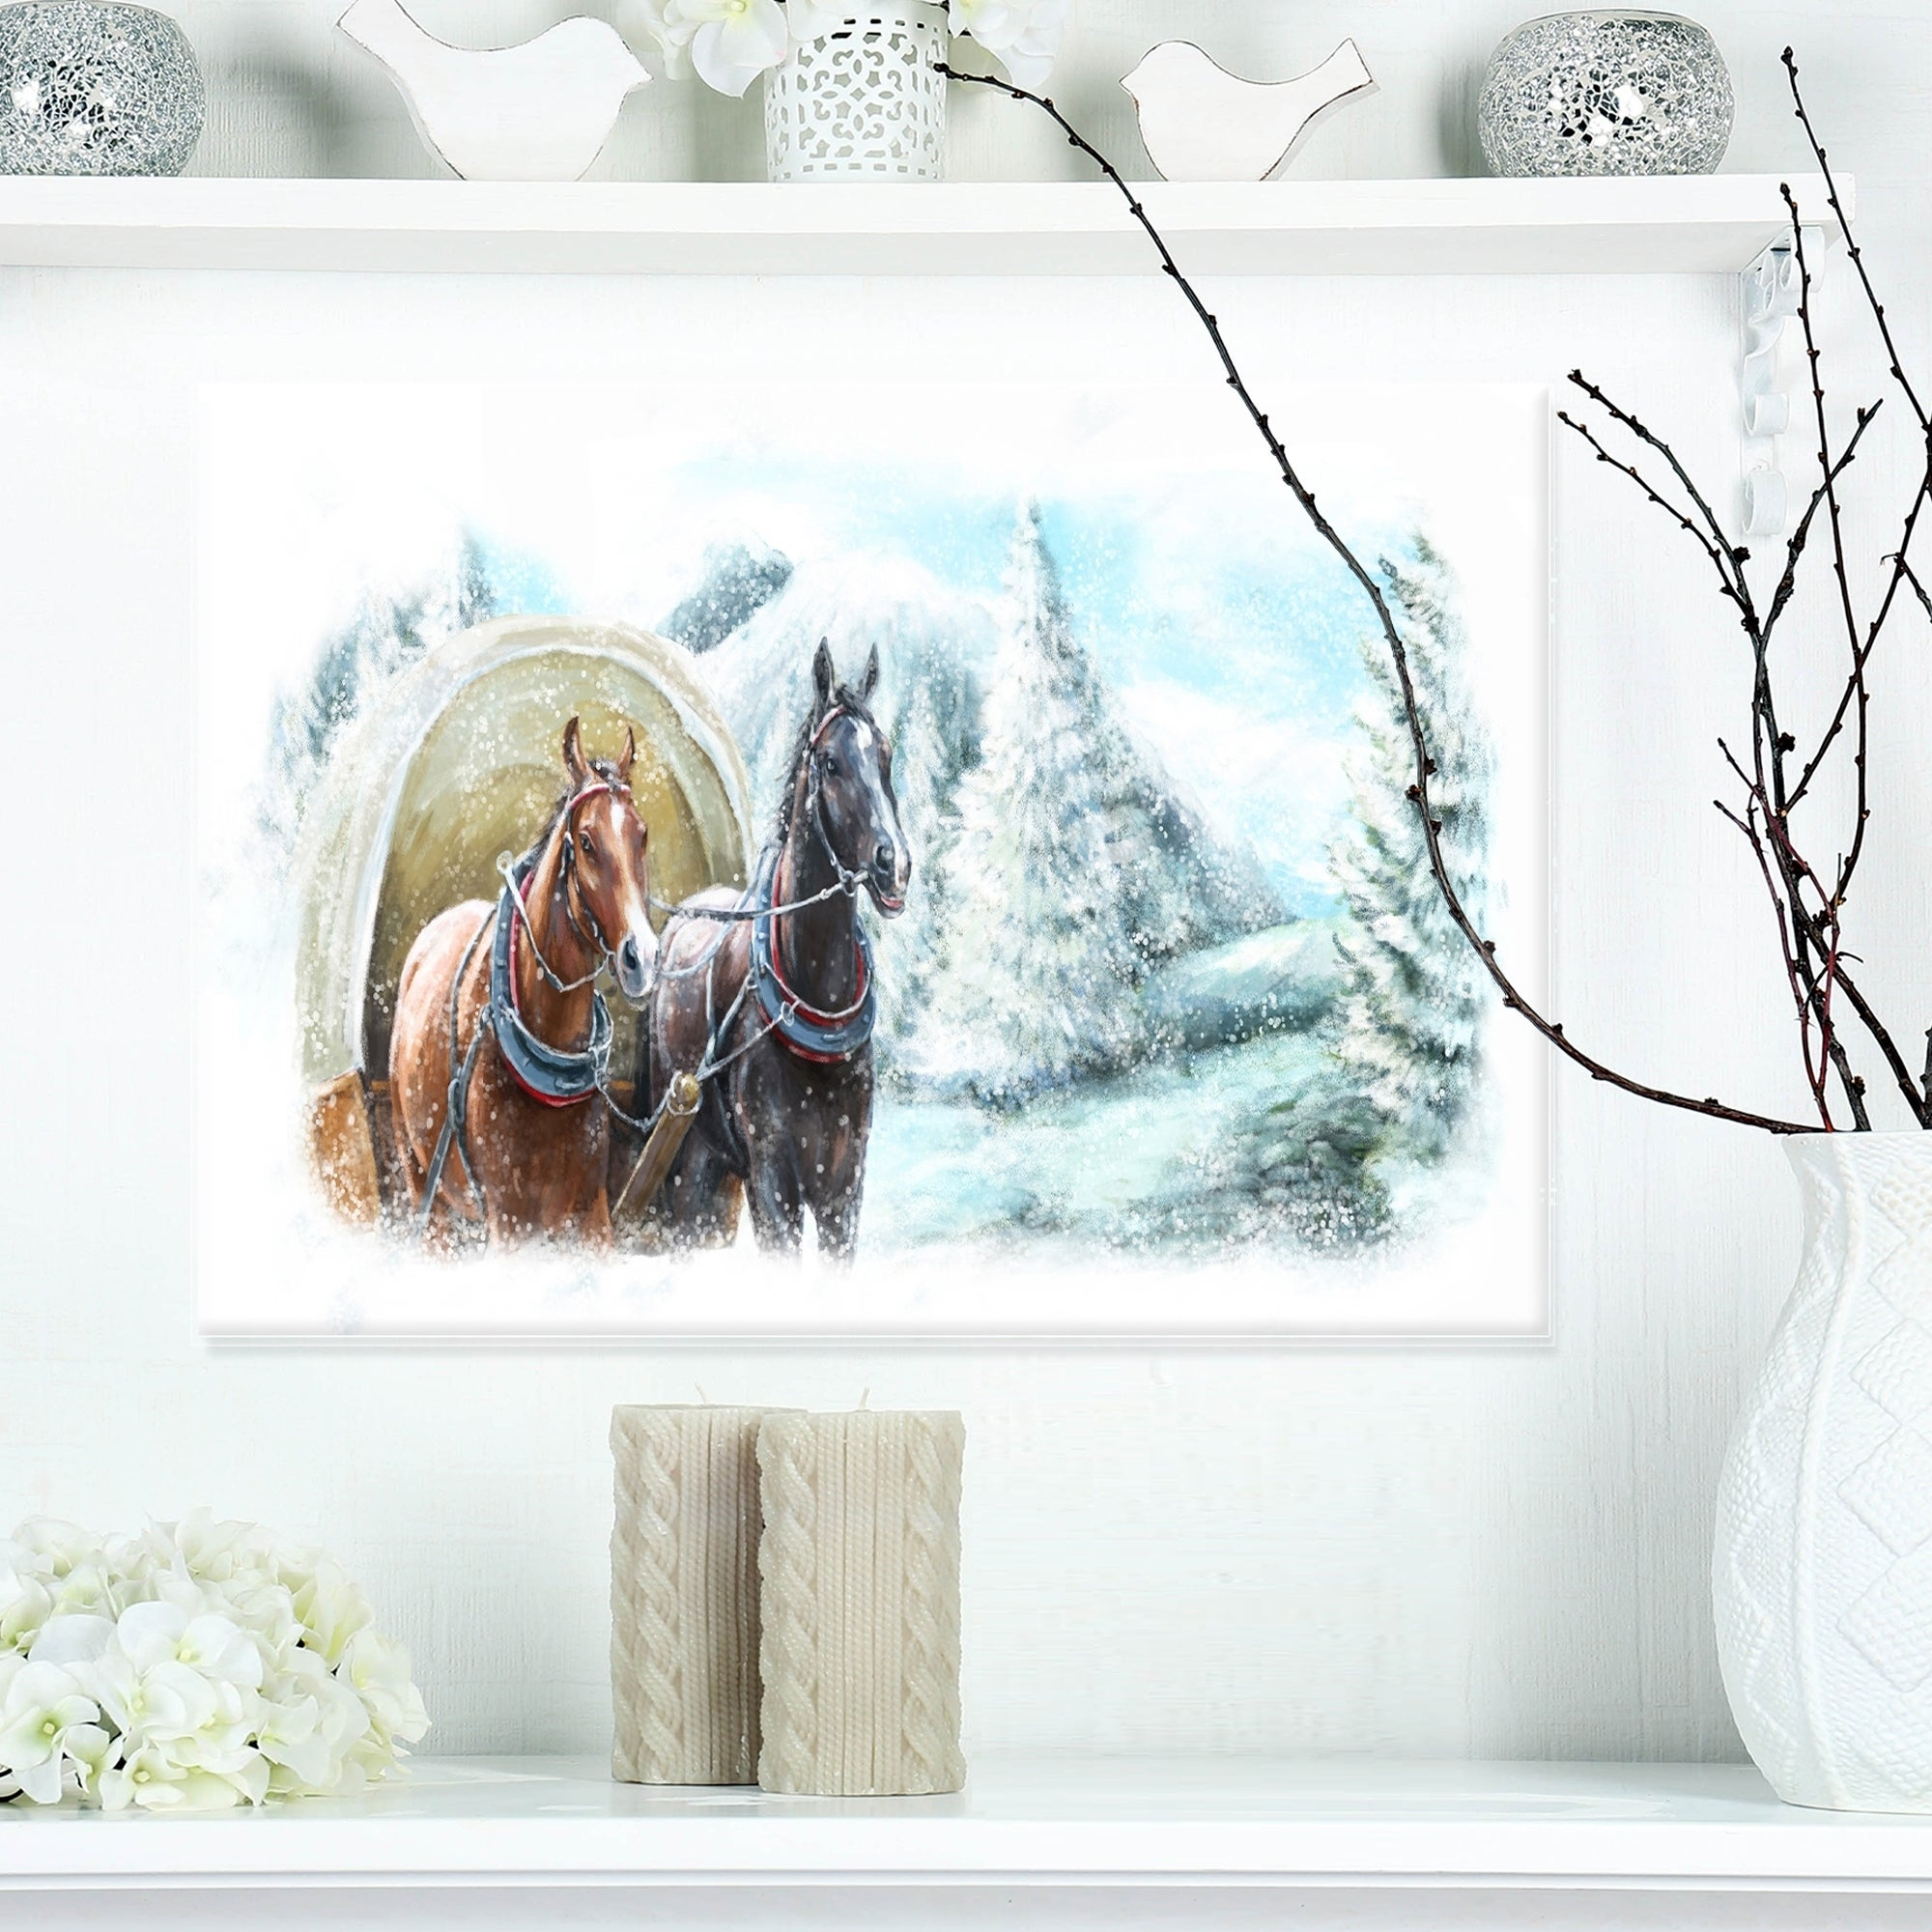 Painted Scene With Horses In Winter Landscape Glossy Metal Wall Art Overstock 12779394